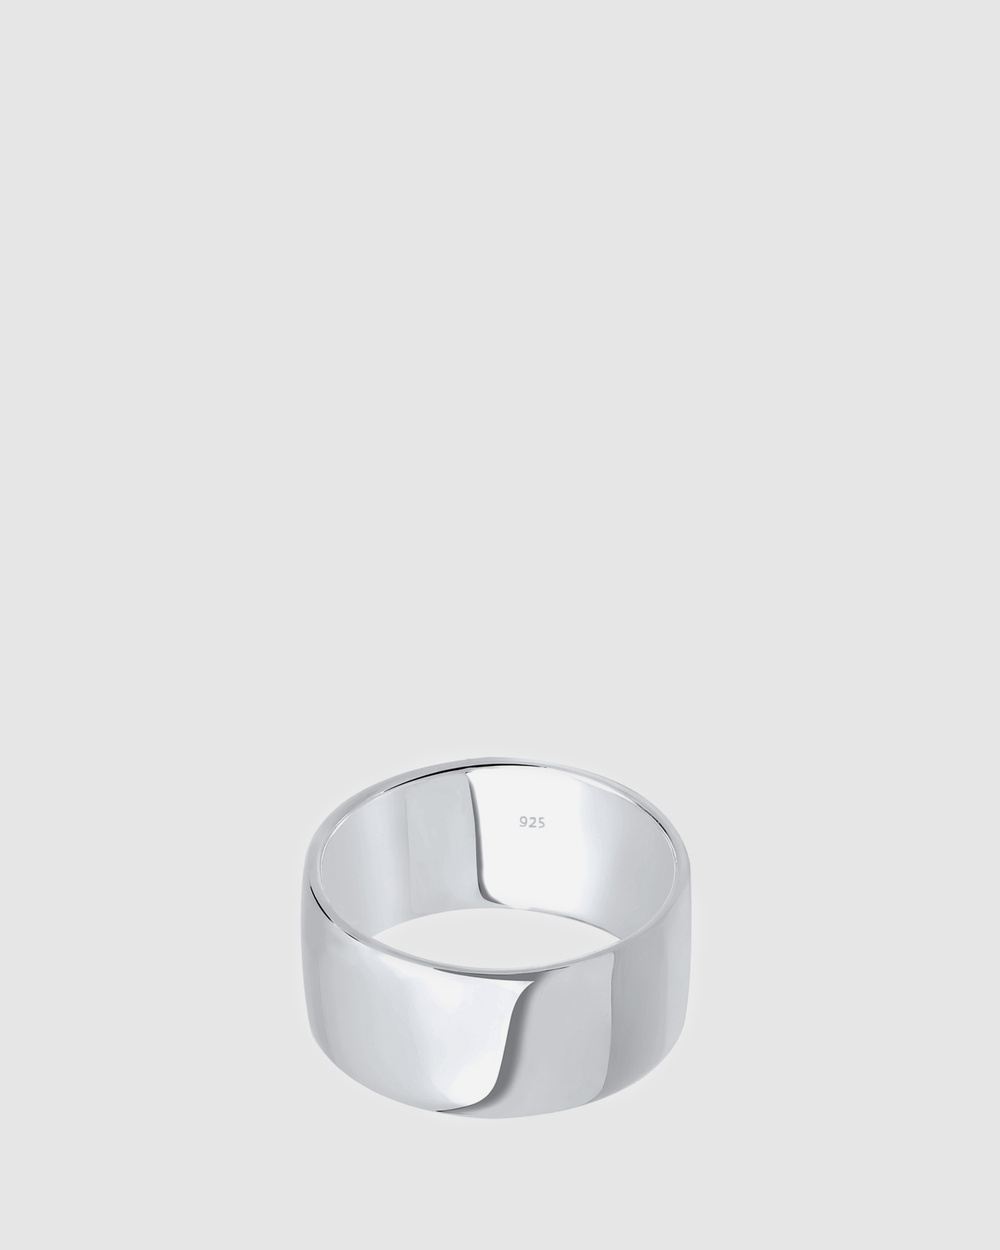 Elli Jewelry Ring Basic Stacking Smooth Surface 925 Sterling Silver Jewellery Silver